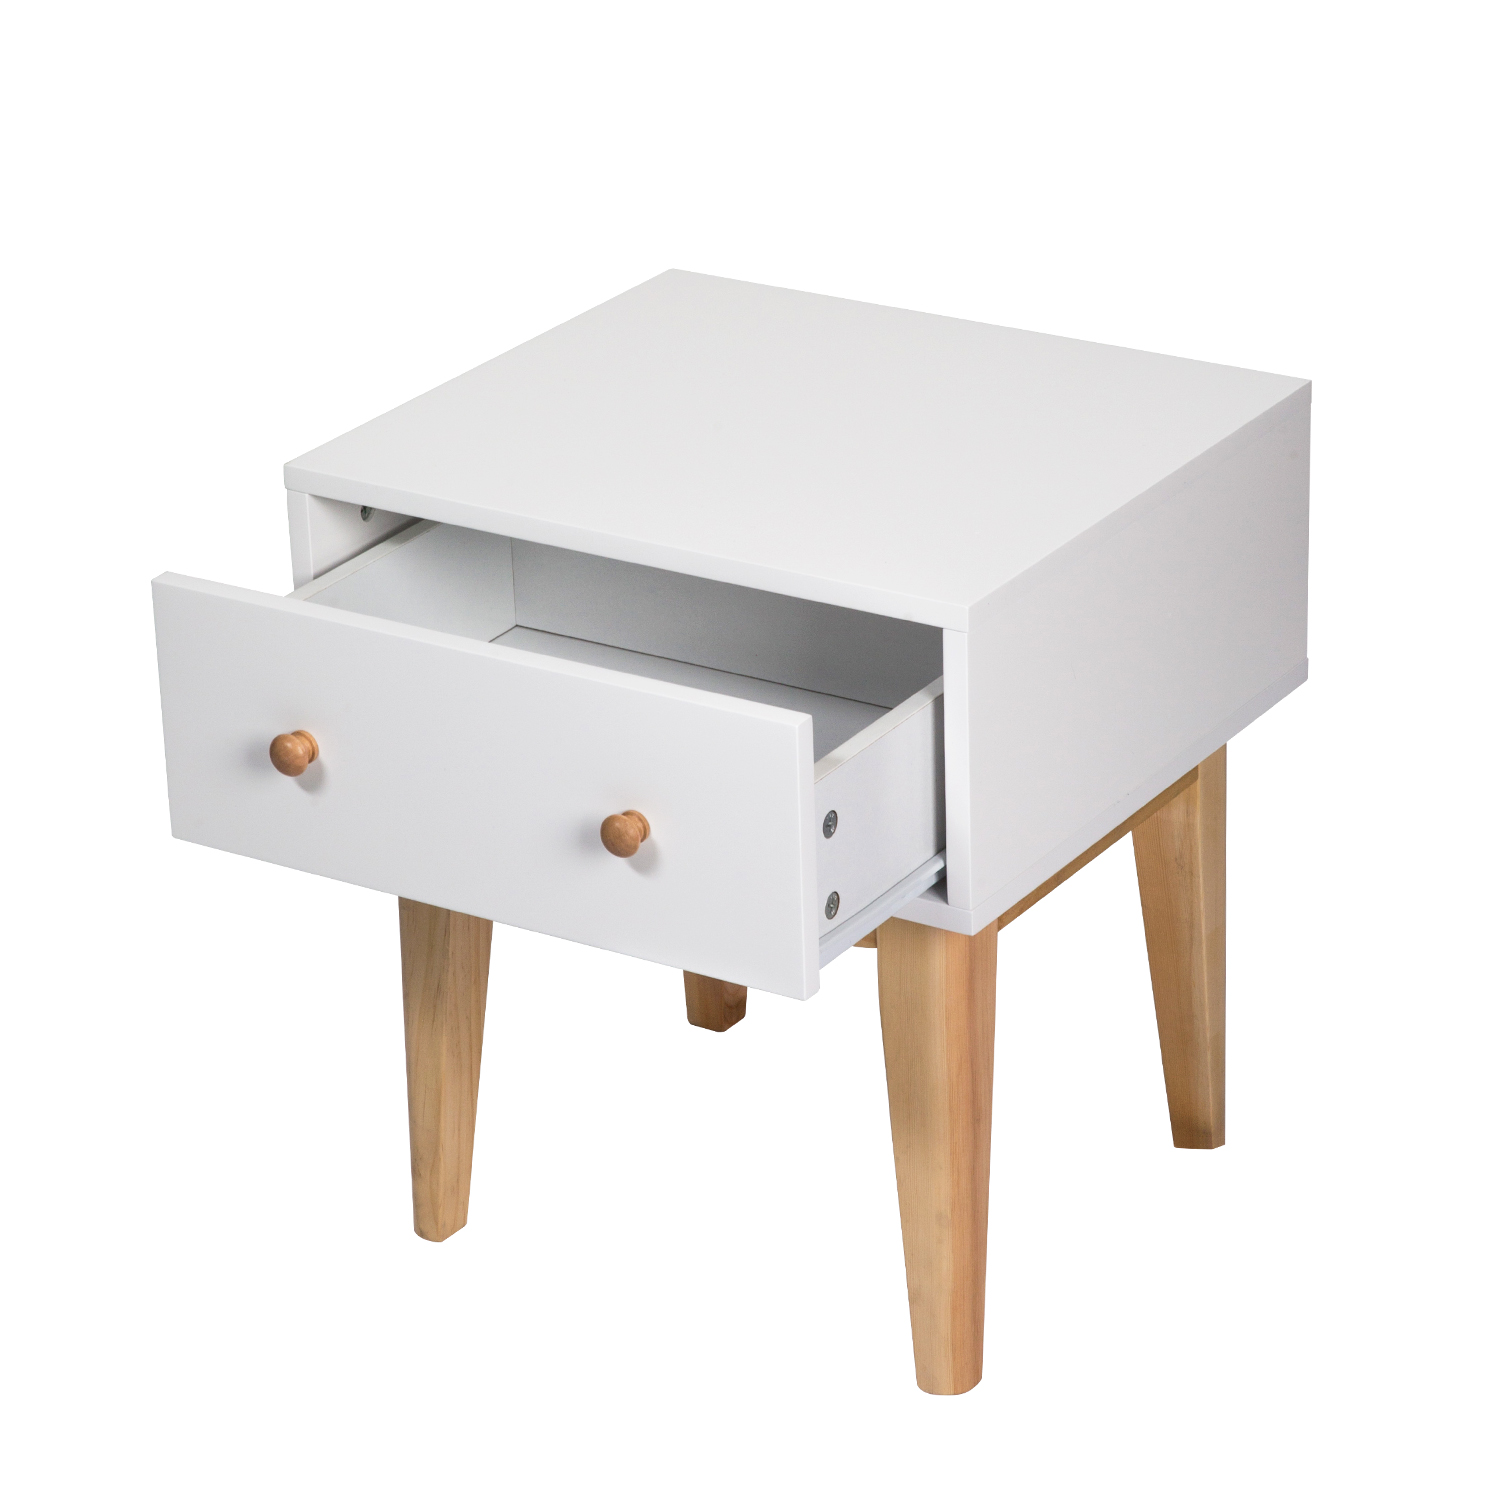 A Single Drawer Easy Assembly Side End Table Nightstand